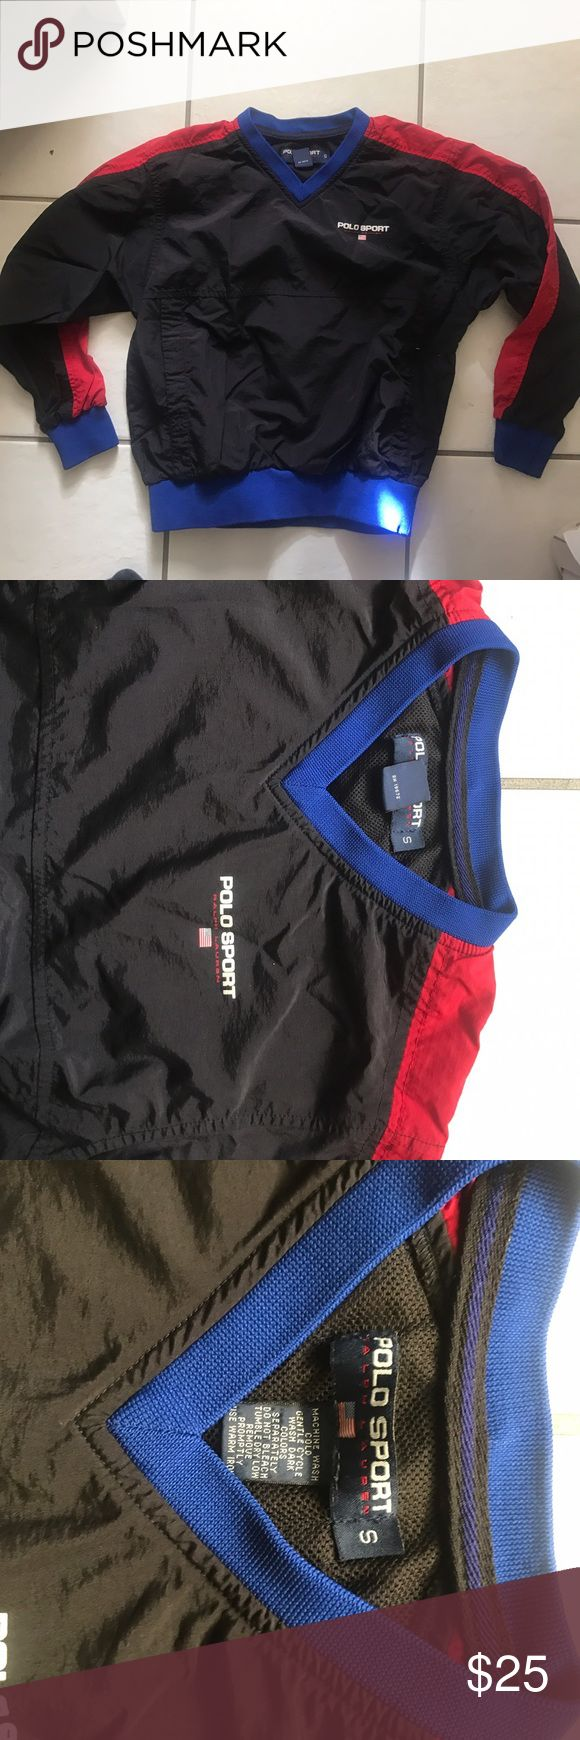 Vintage Polo Sport pullover windbreaker Vintage Polo Sport kids pullover windbreaker in great condition feel free to make an offer Polo by Ralph Lauren Jackets & Coats Raincoats